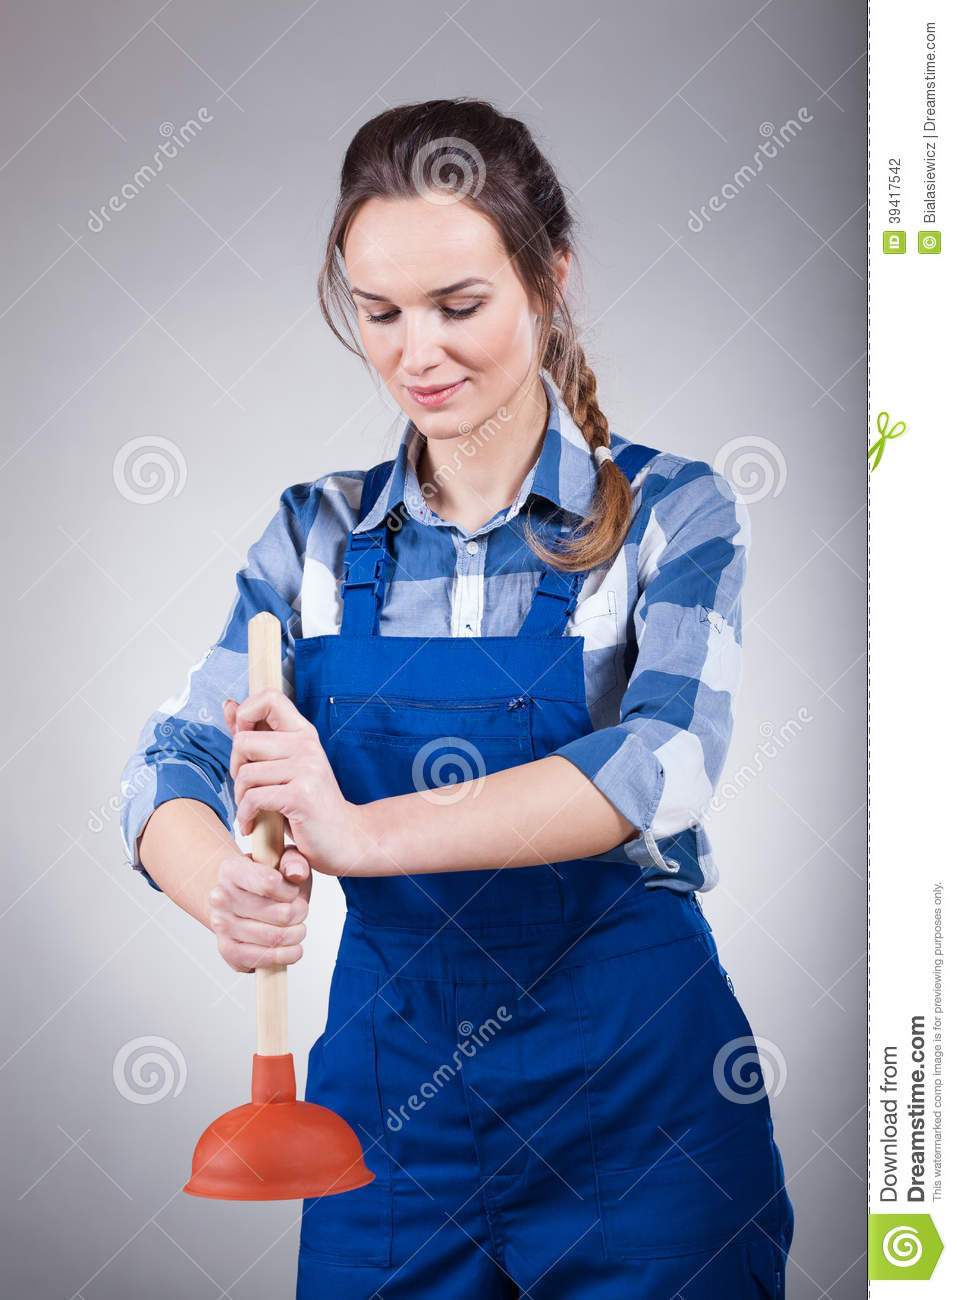 Woman With A Plunger 20